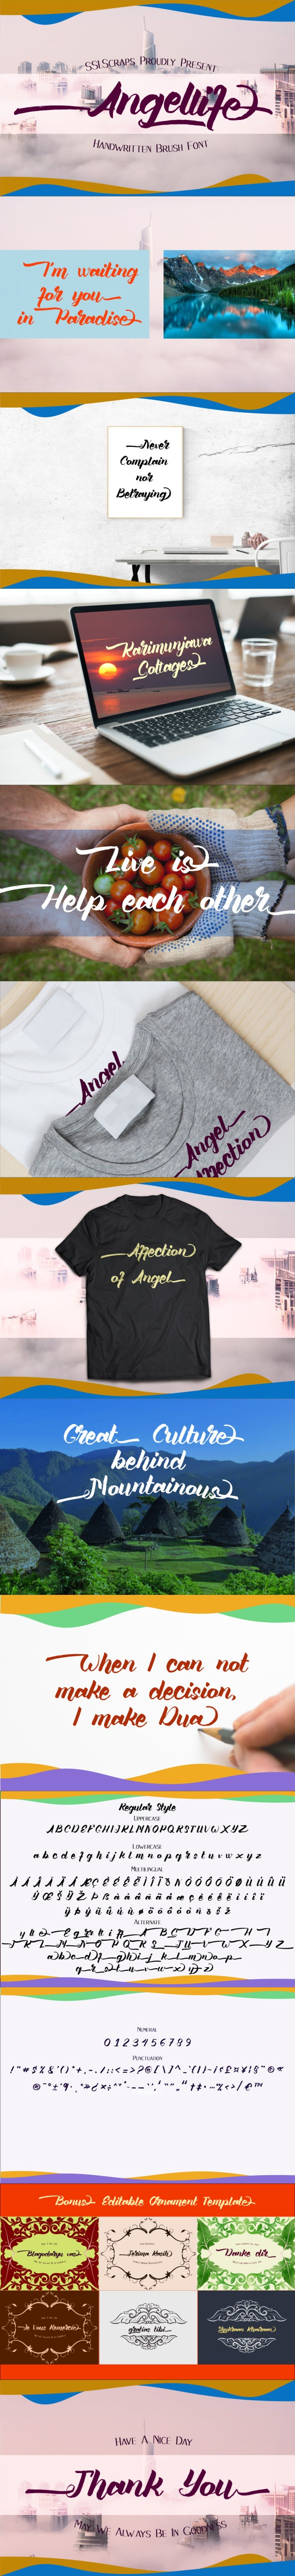 Angellife Brush Font - Hand-writing Script